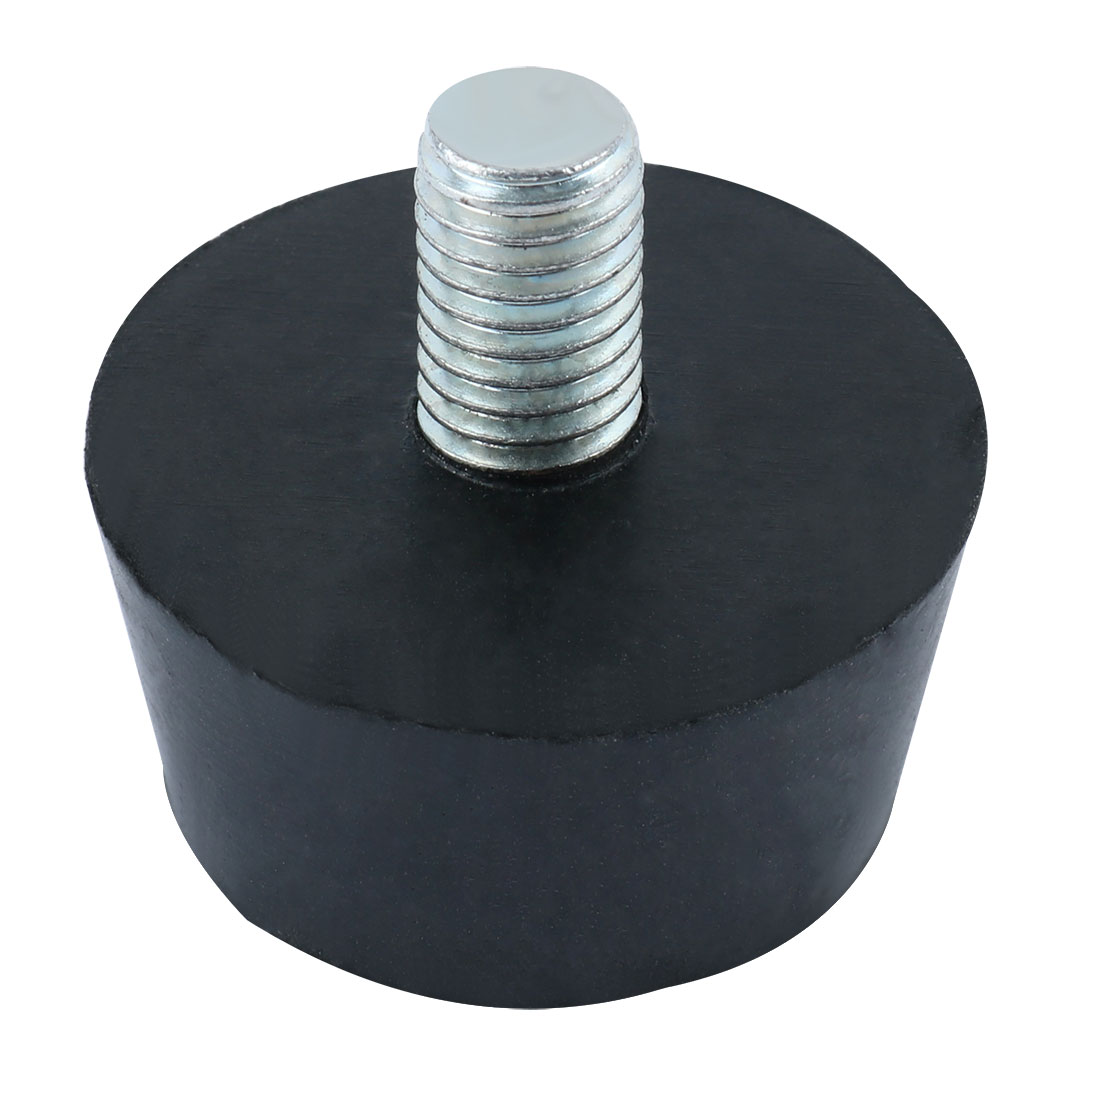 Black Rubber Base Metal Threaded Rod Chair Table Leg Pad Protector M10x16mmx36mm